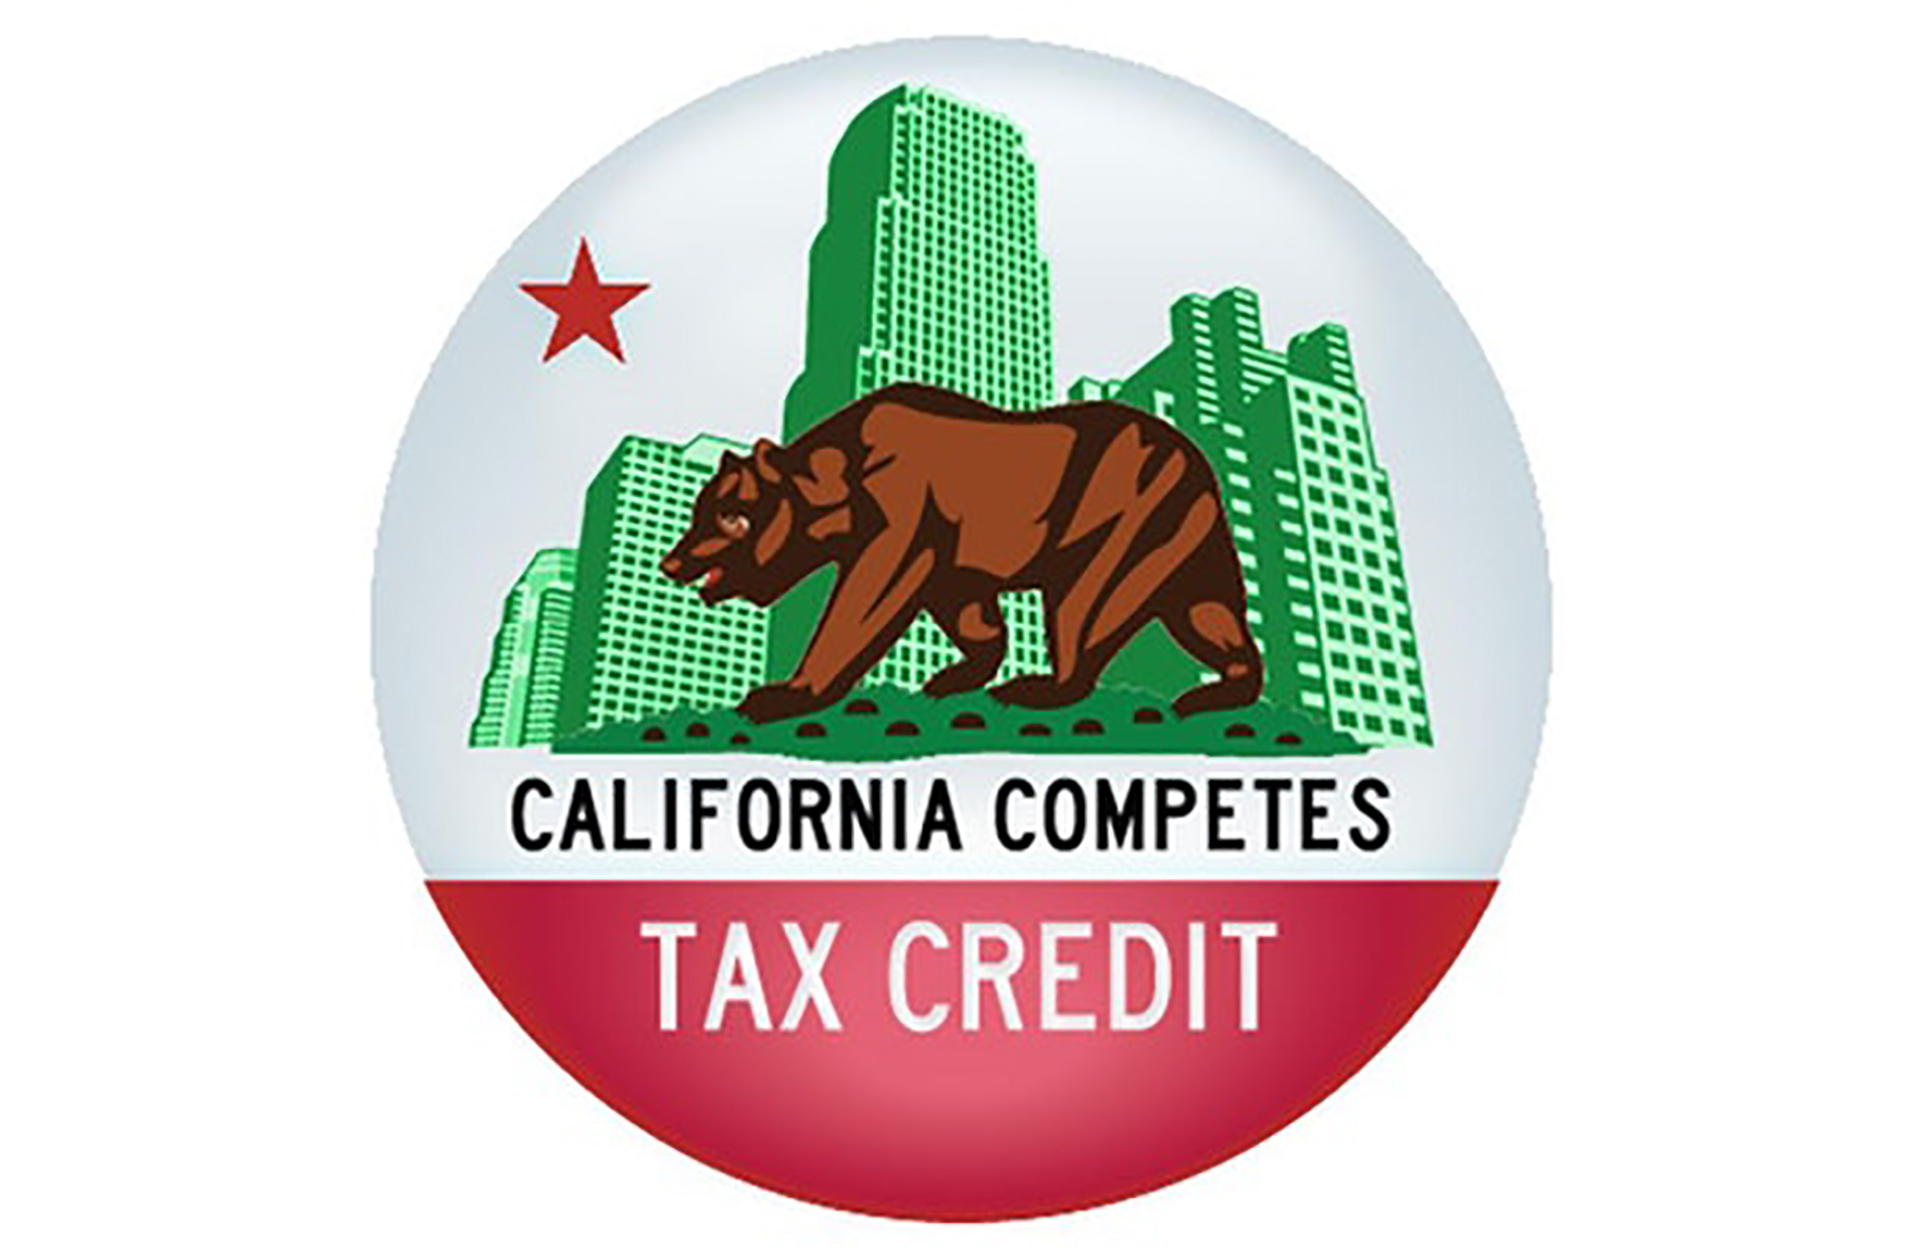 GO-Biz Hosting Webinars for Businesses Wanting to Apply for Tax Credit Program